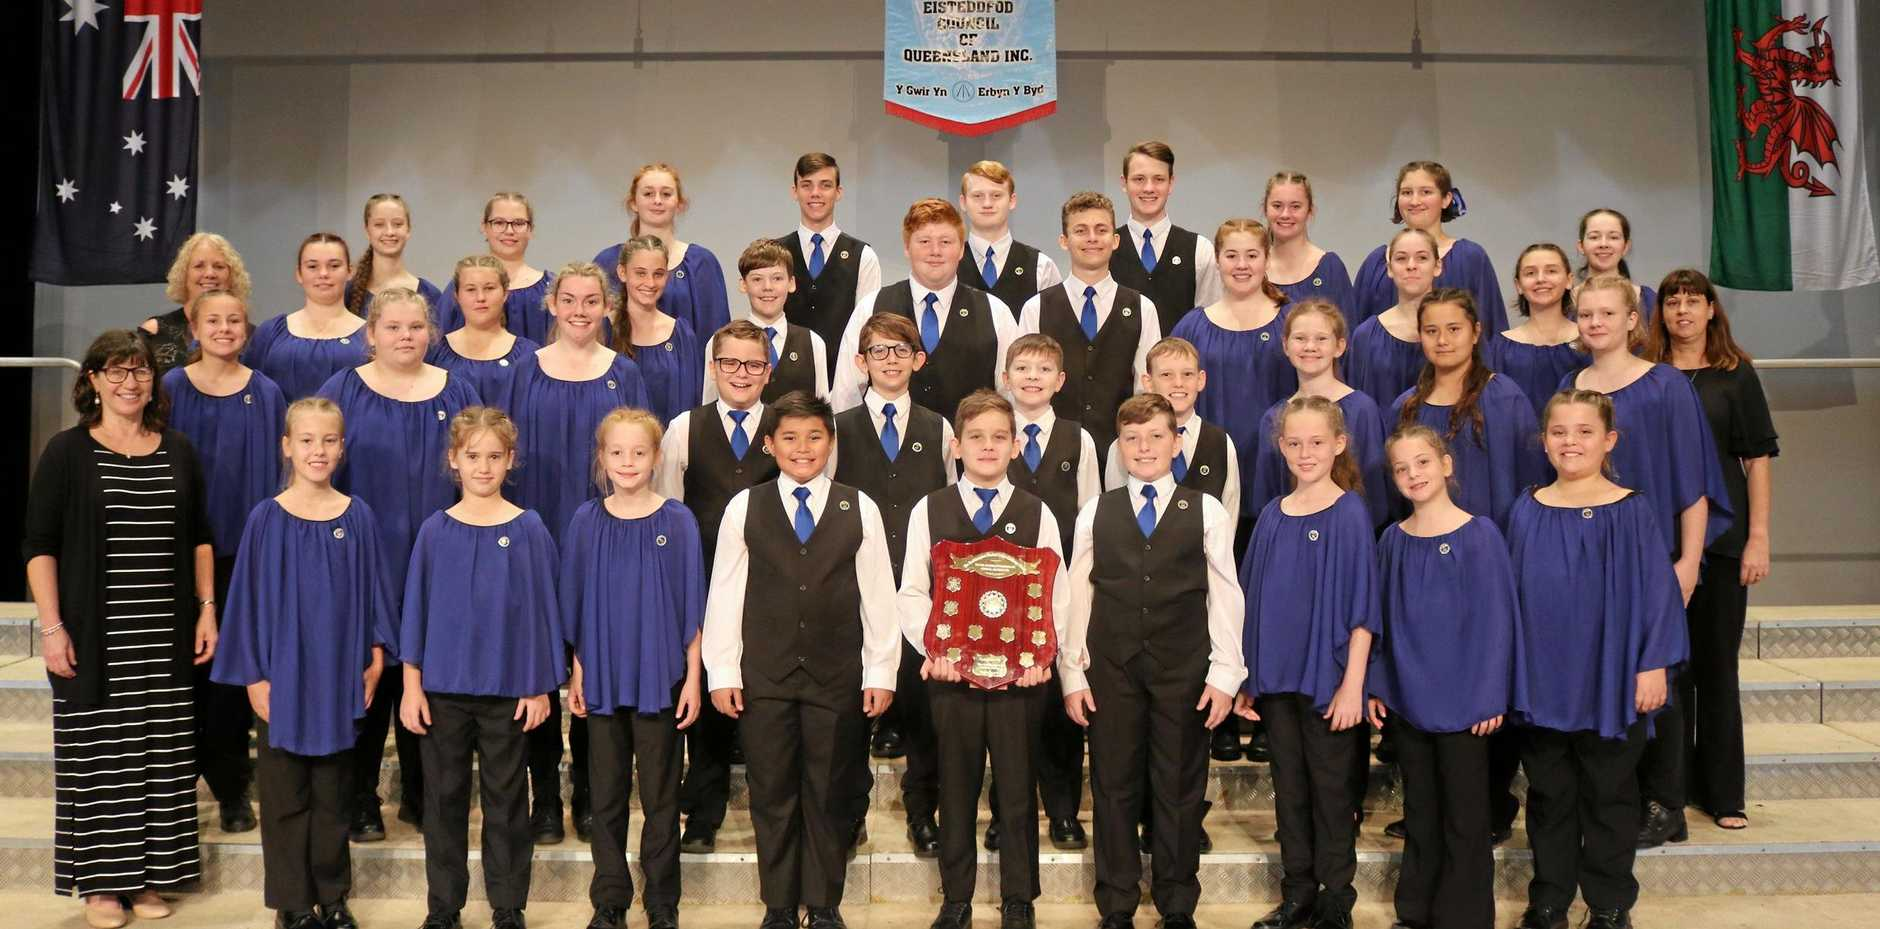 CHAMPIONS: The full choir including conductors Julie and Jodie and official accompanist, Anne Gralow.